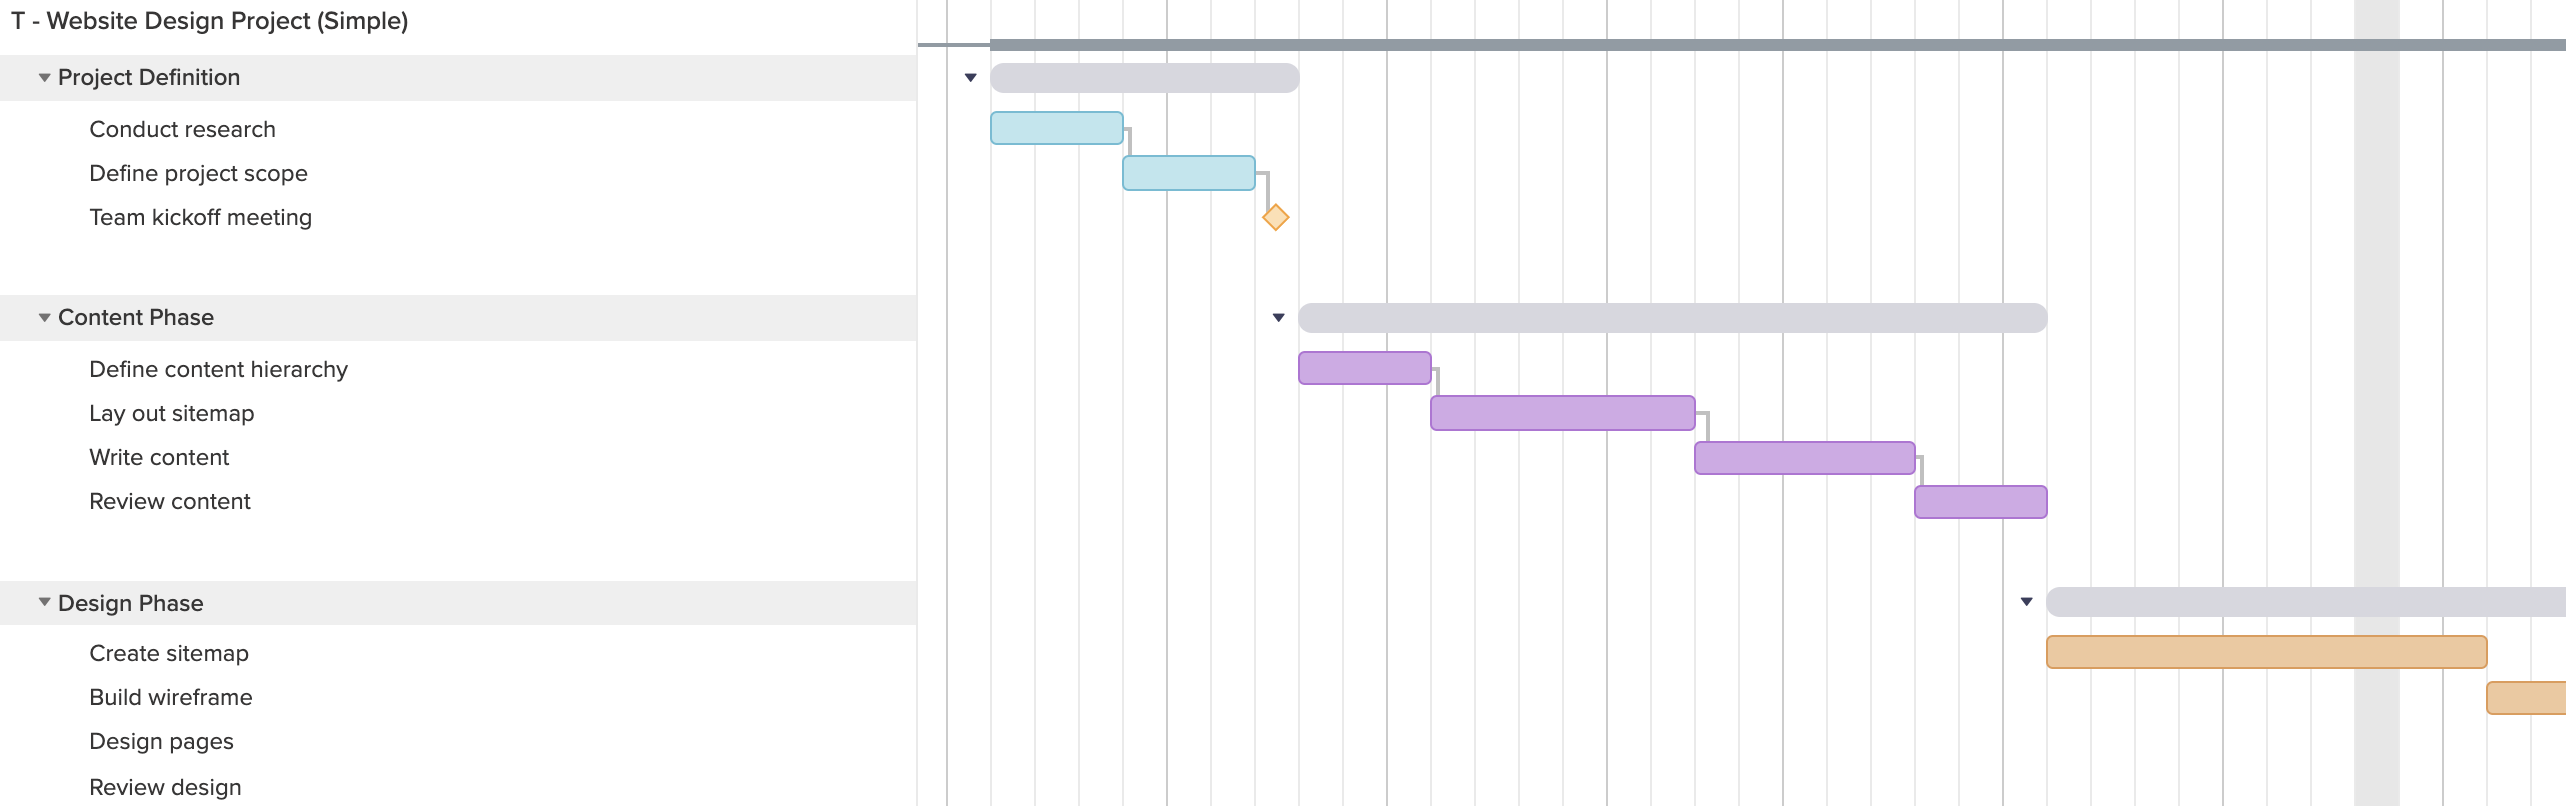 simple gantt chart template for website design project planning